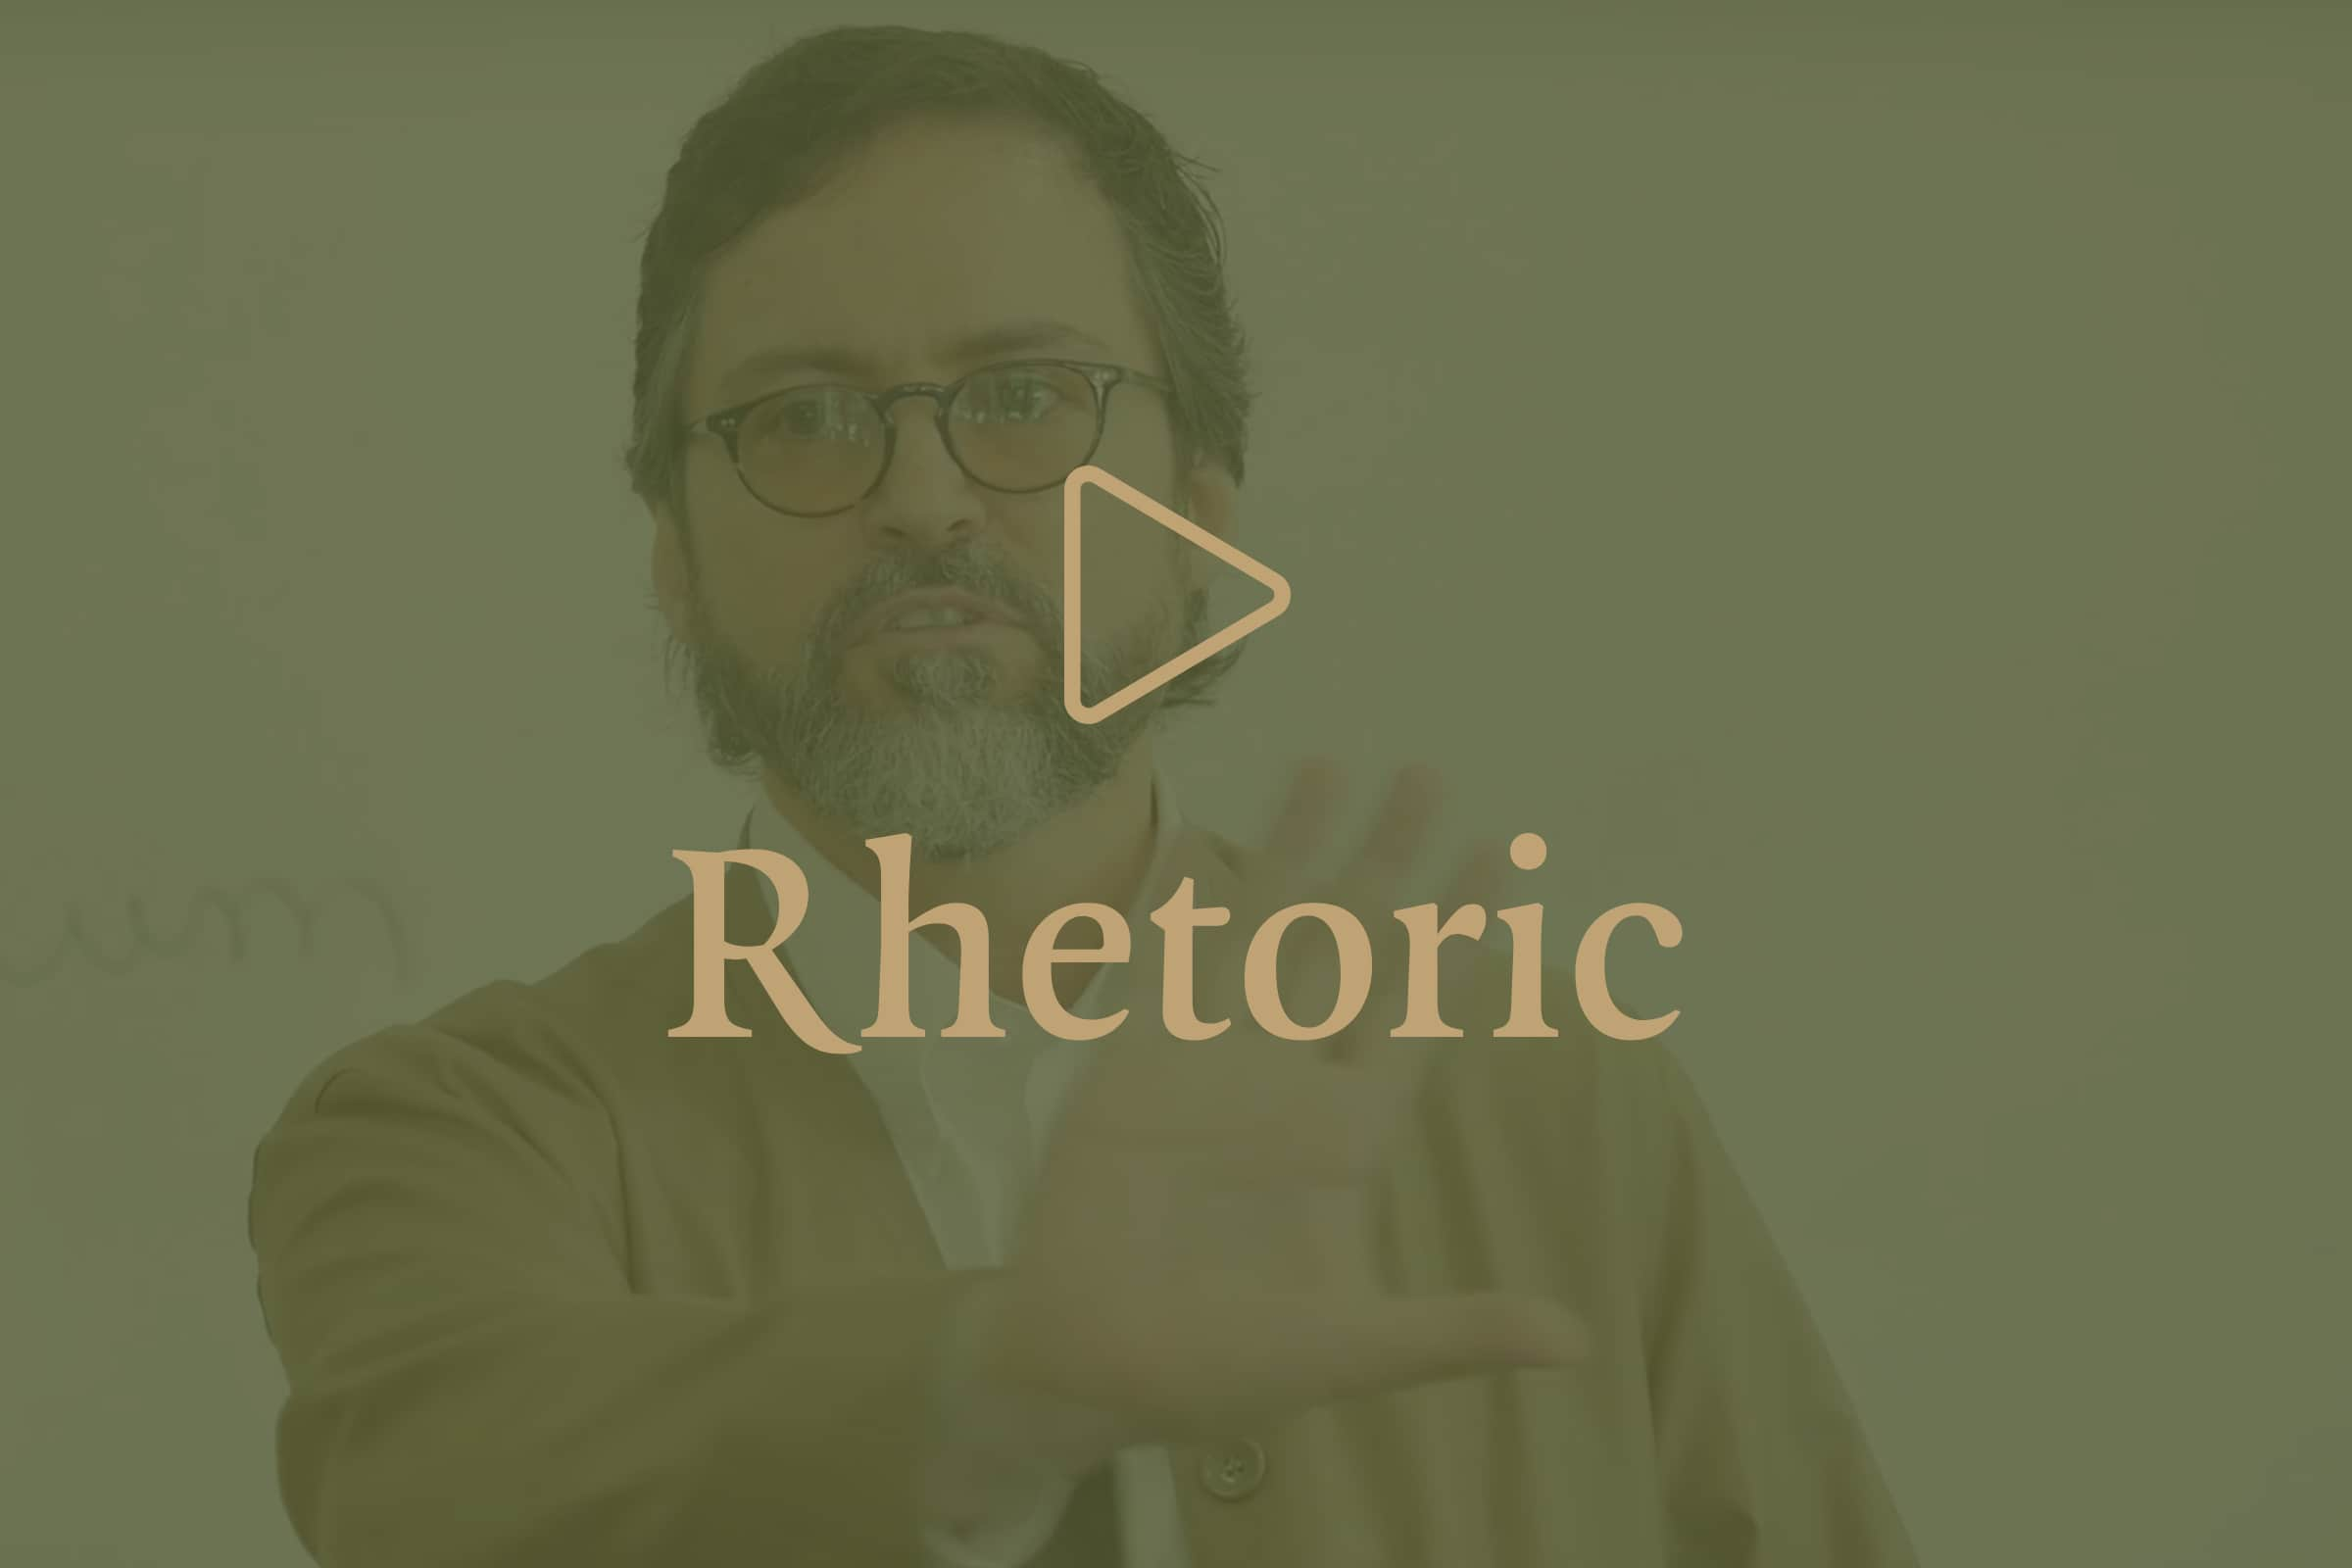 Hamza Yusuf image with overlay of play icon with Rhetoric title.